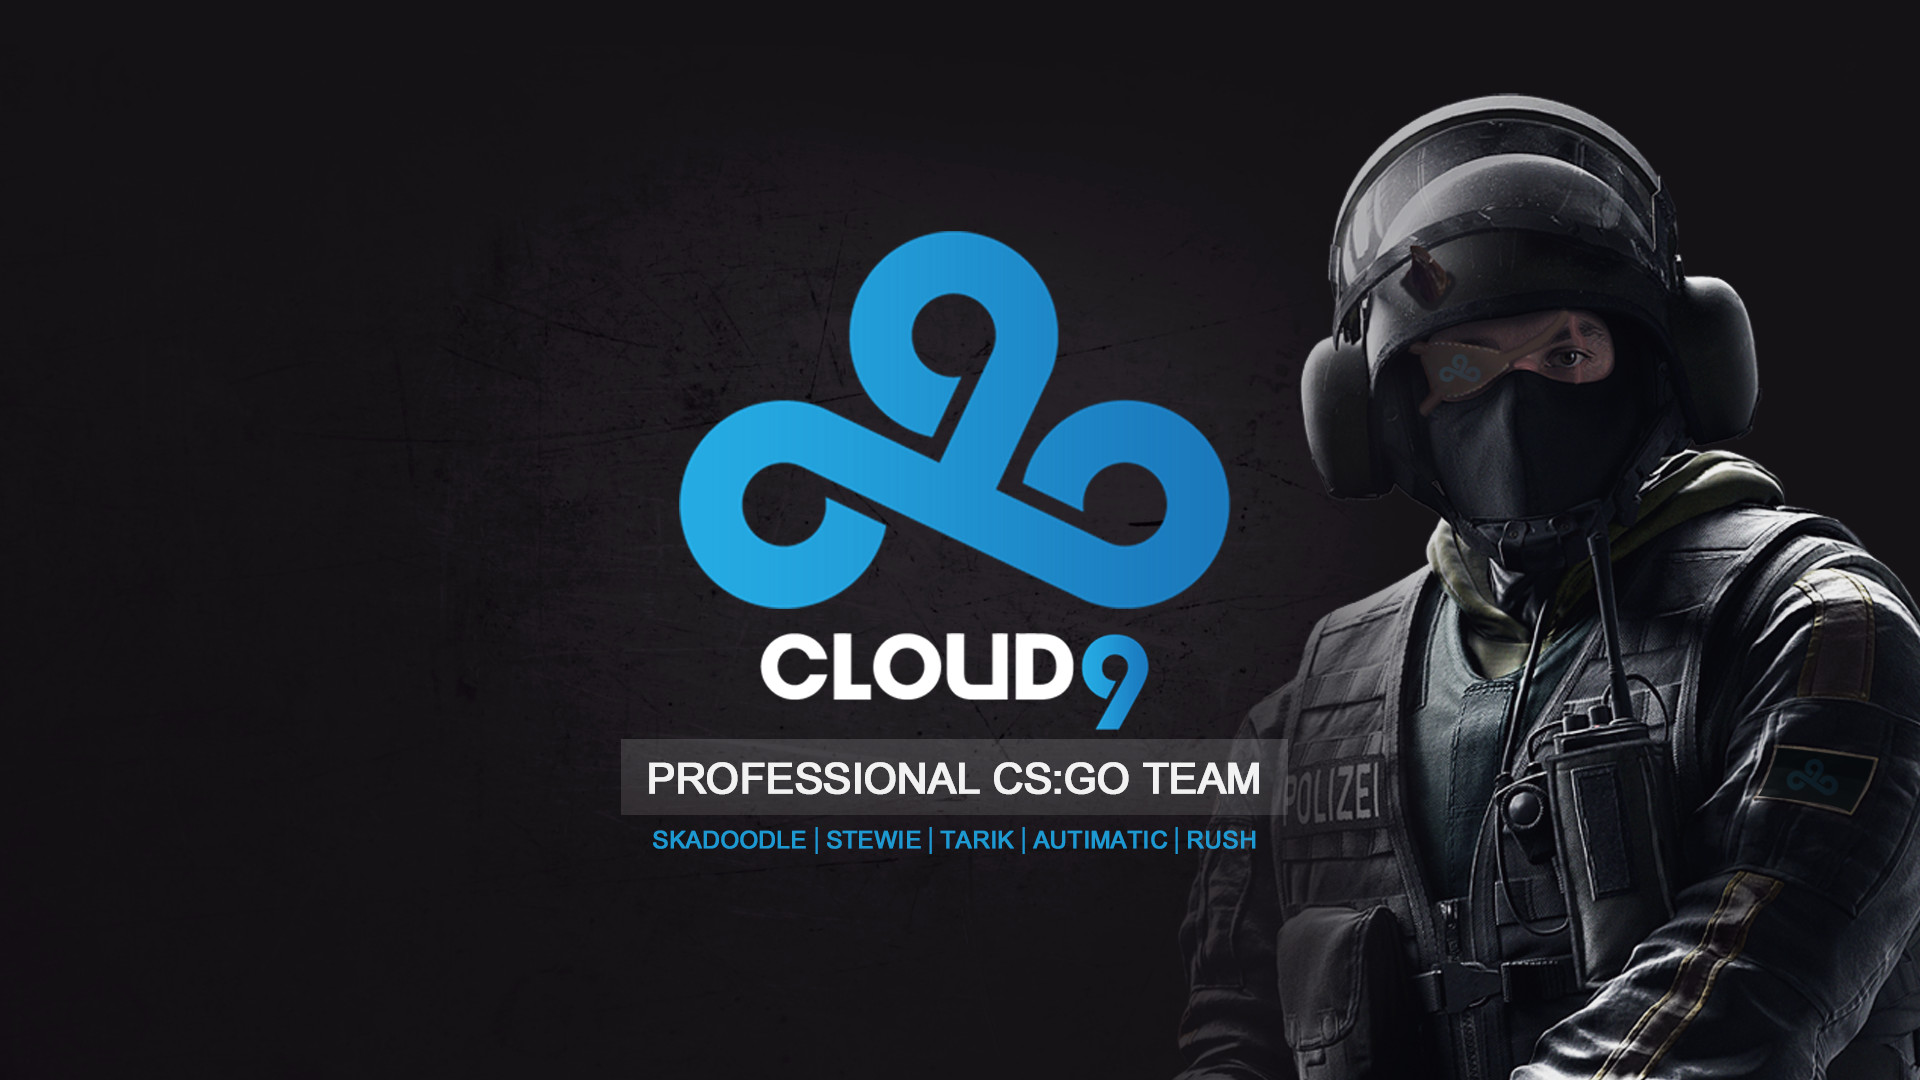 1920x1080 Cloud9 Wallpaper